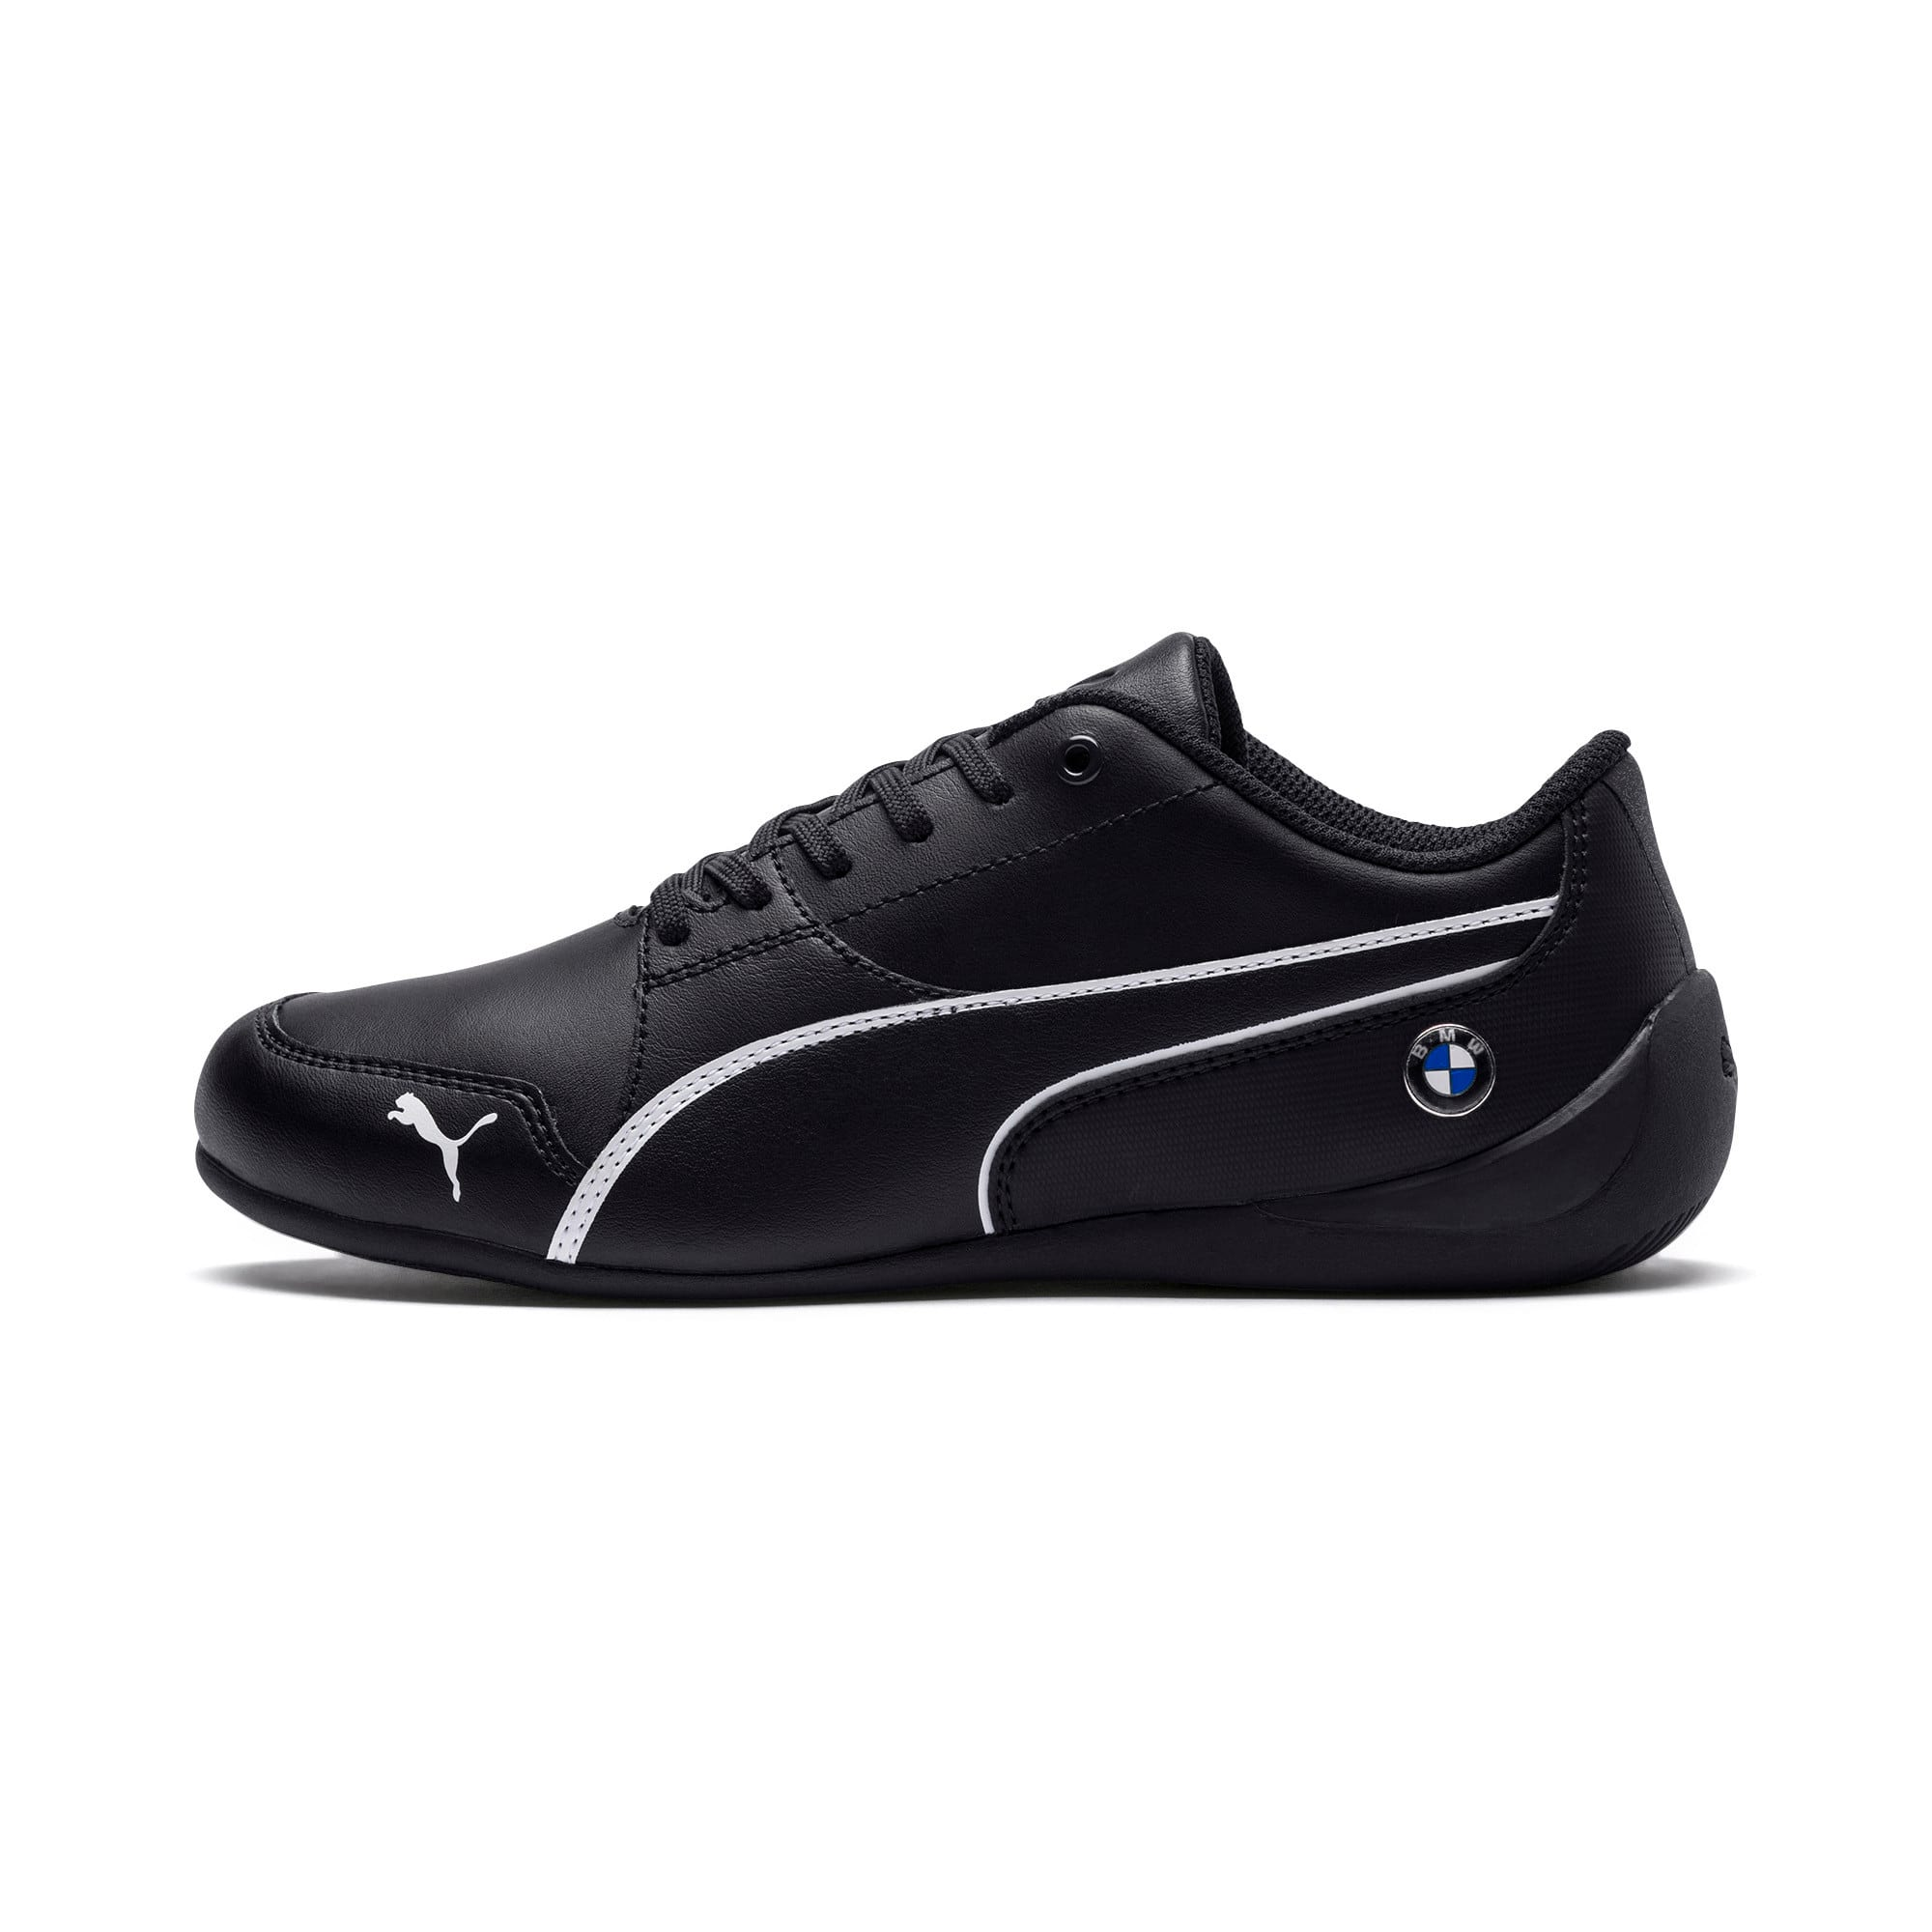 Thumbnail 1 of BMW Motorsport Drift Cat 7 Shoes JR, Anthracite-Anthracite, medium